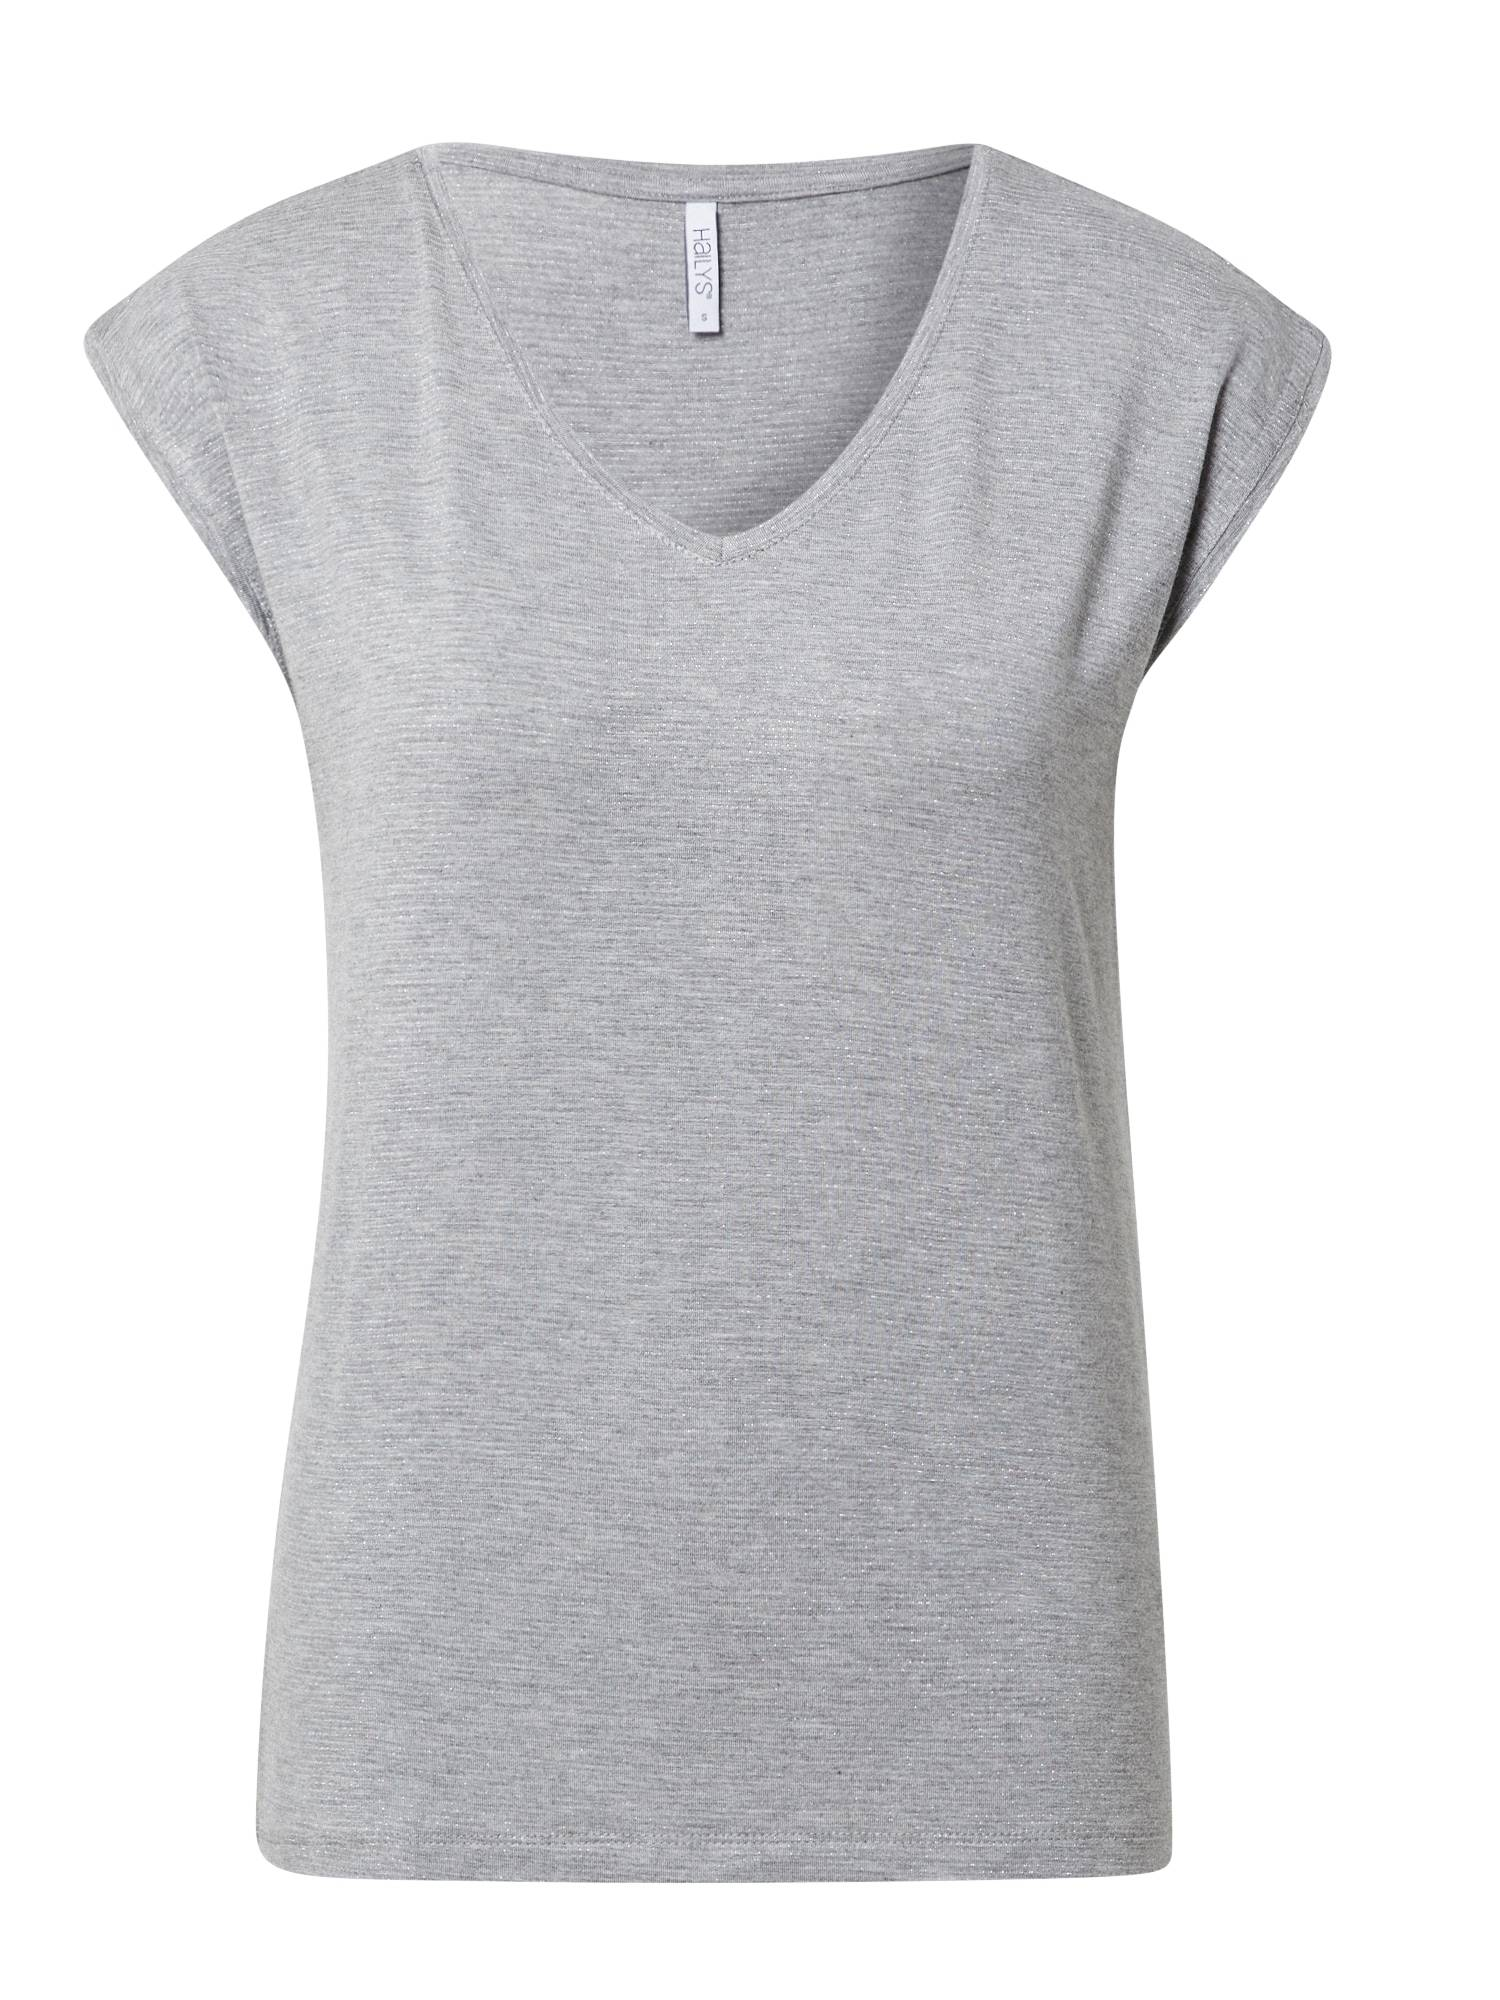 Hailys T-shirt 'TP Luxe'  - Gris - Taille: S - female